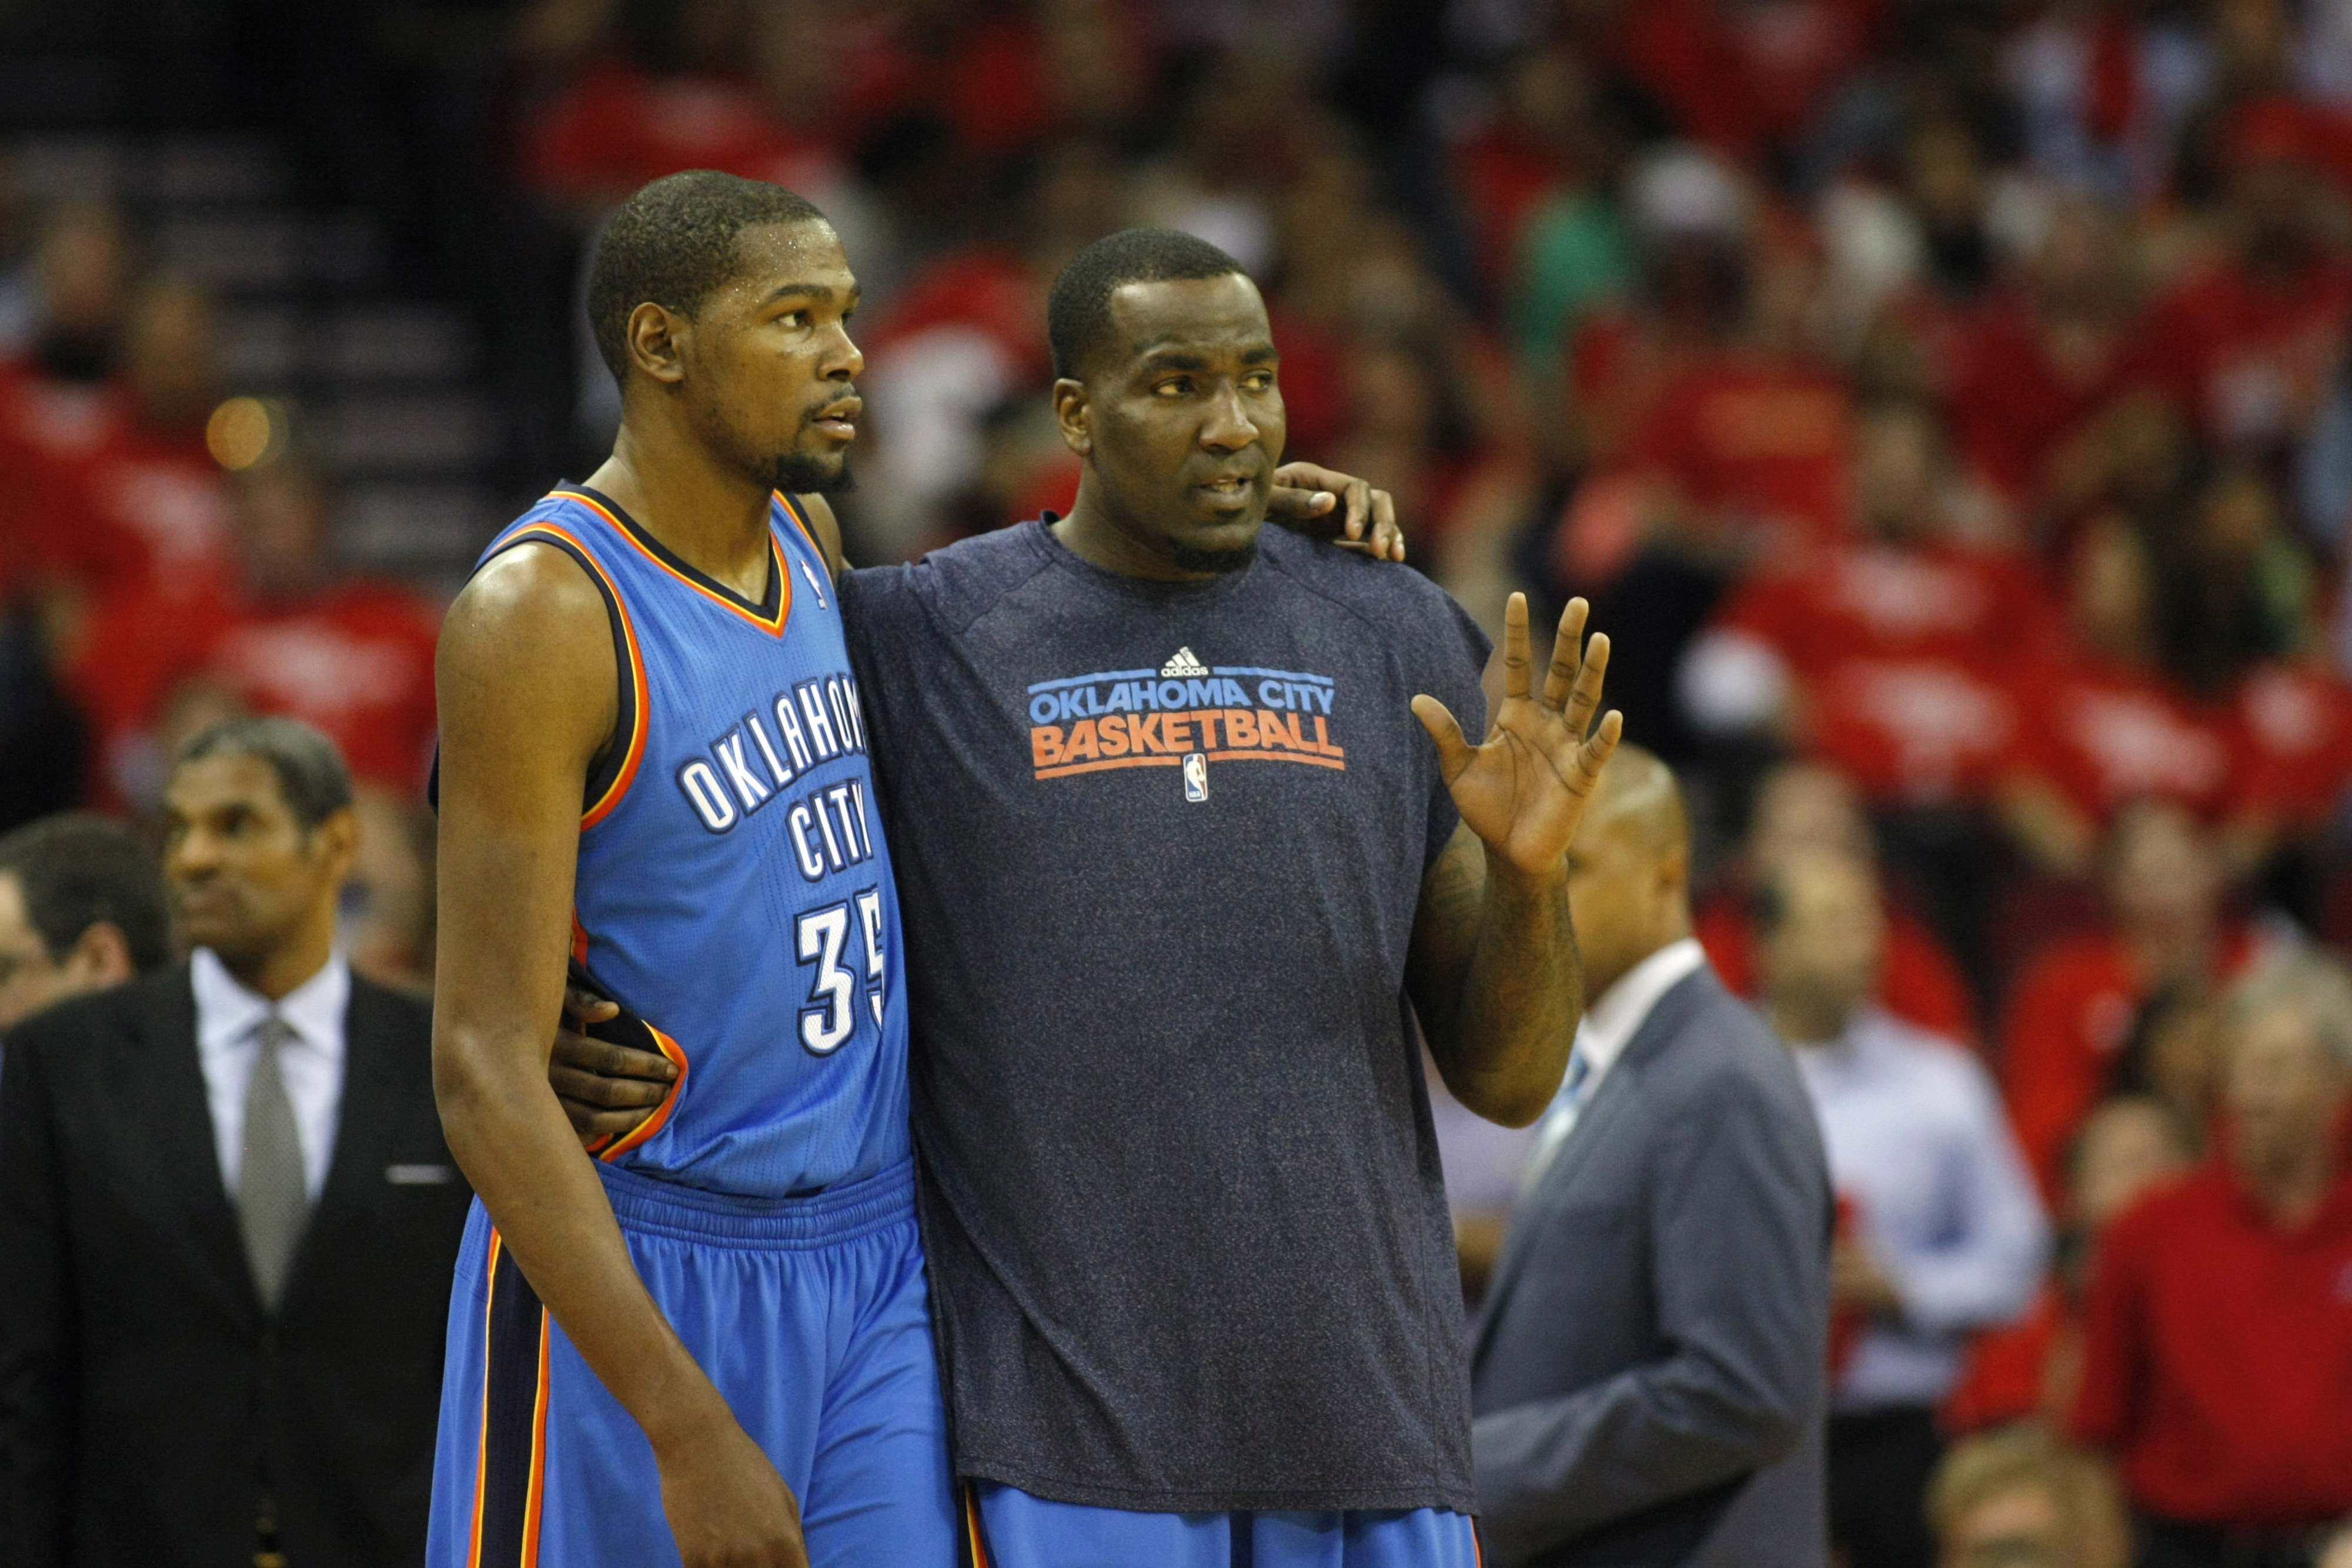 Kendrick Perkins offered advice, but not much else on the court last night.